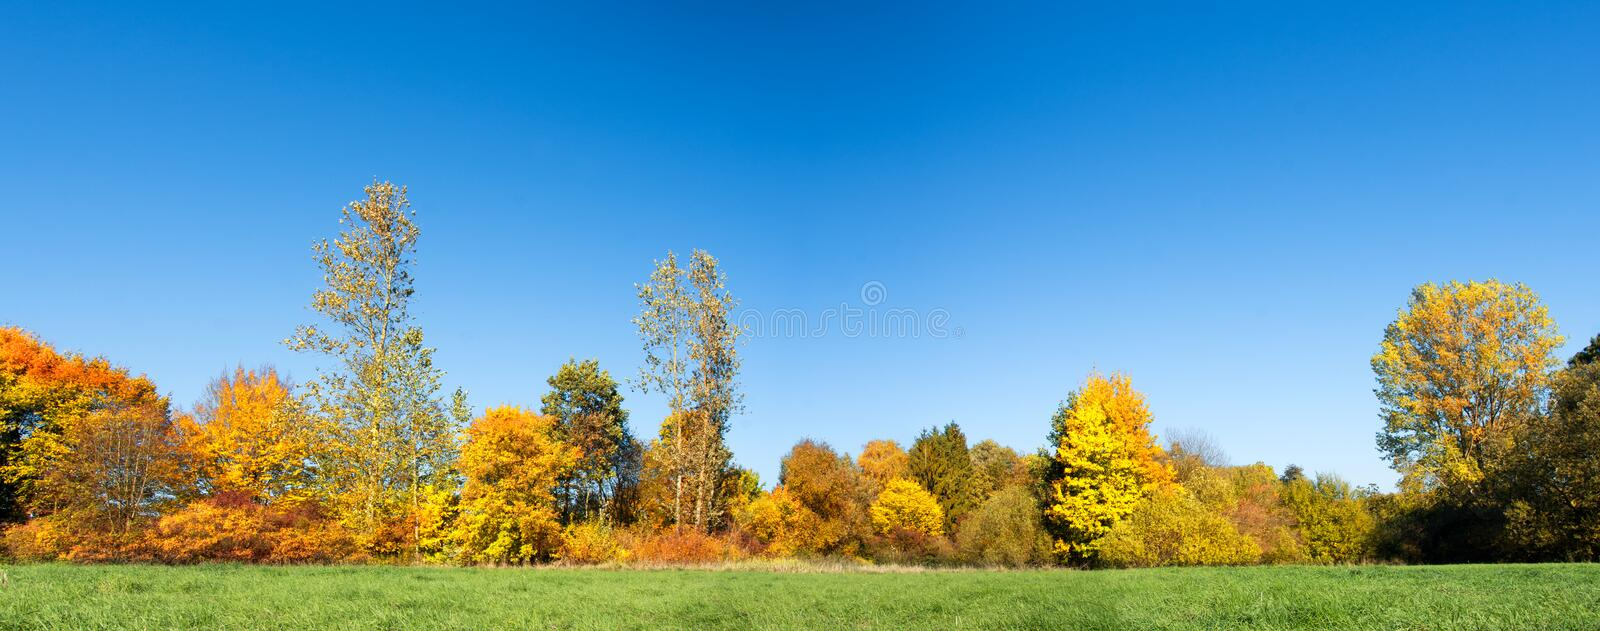 Kleurrijke Autumn Forest With Green Meadow In-Voorgrond - Panorama in Sunny Day royalty-vrije stock fotografie